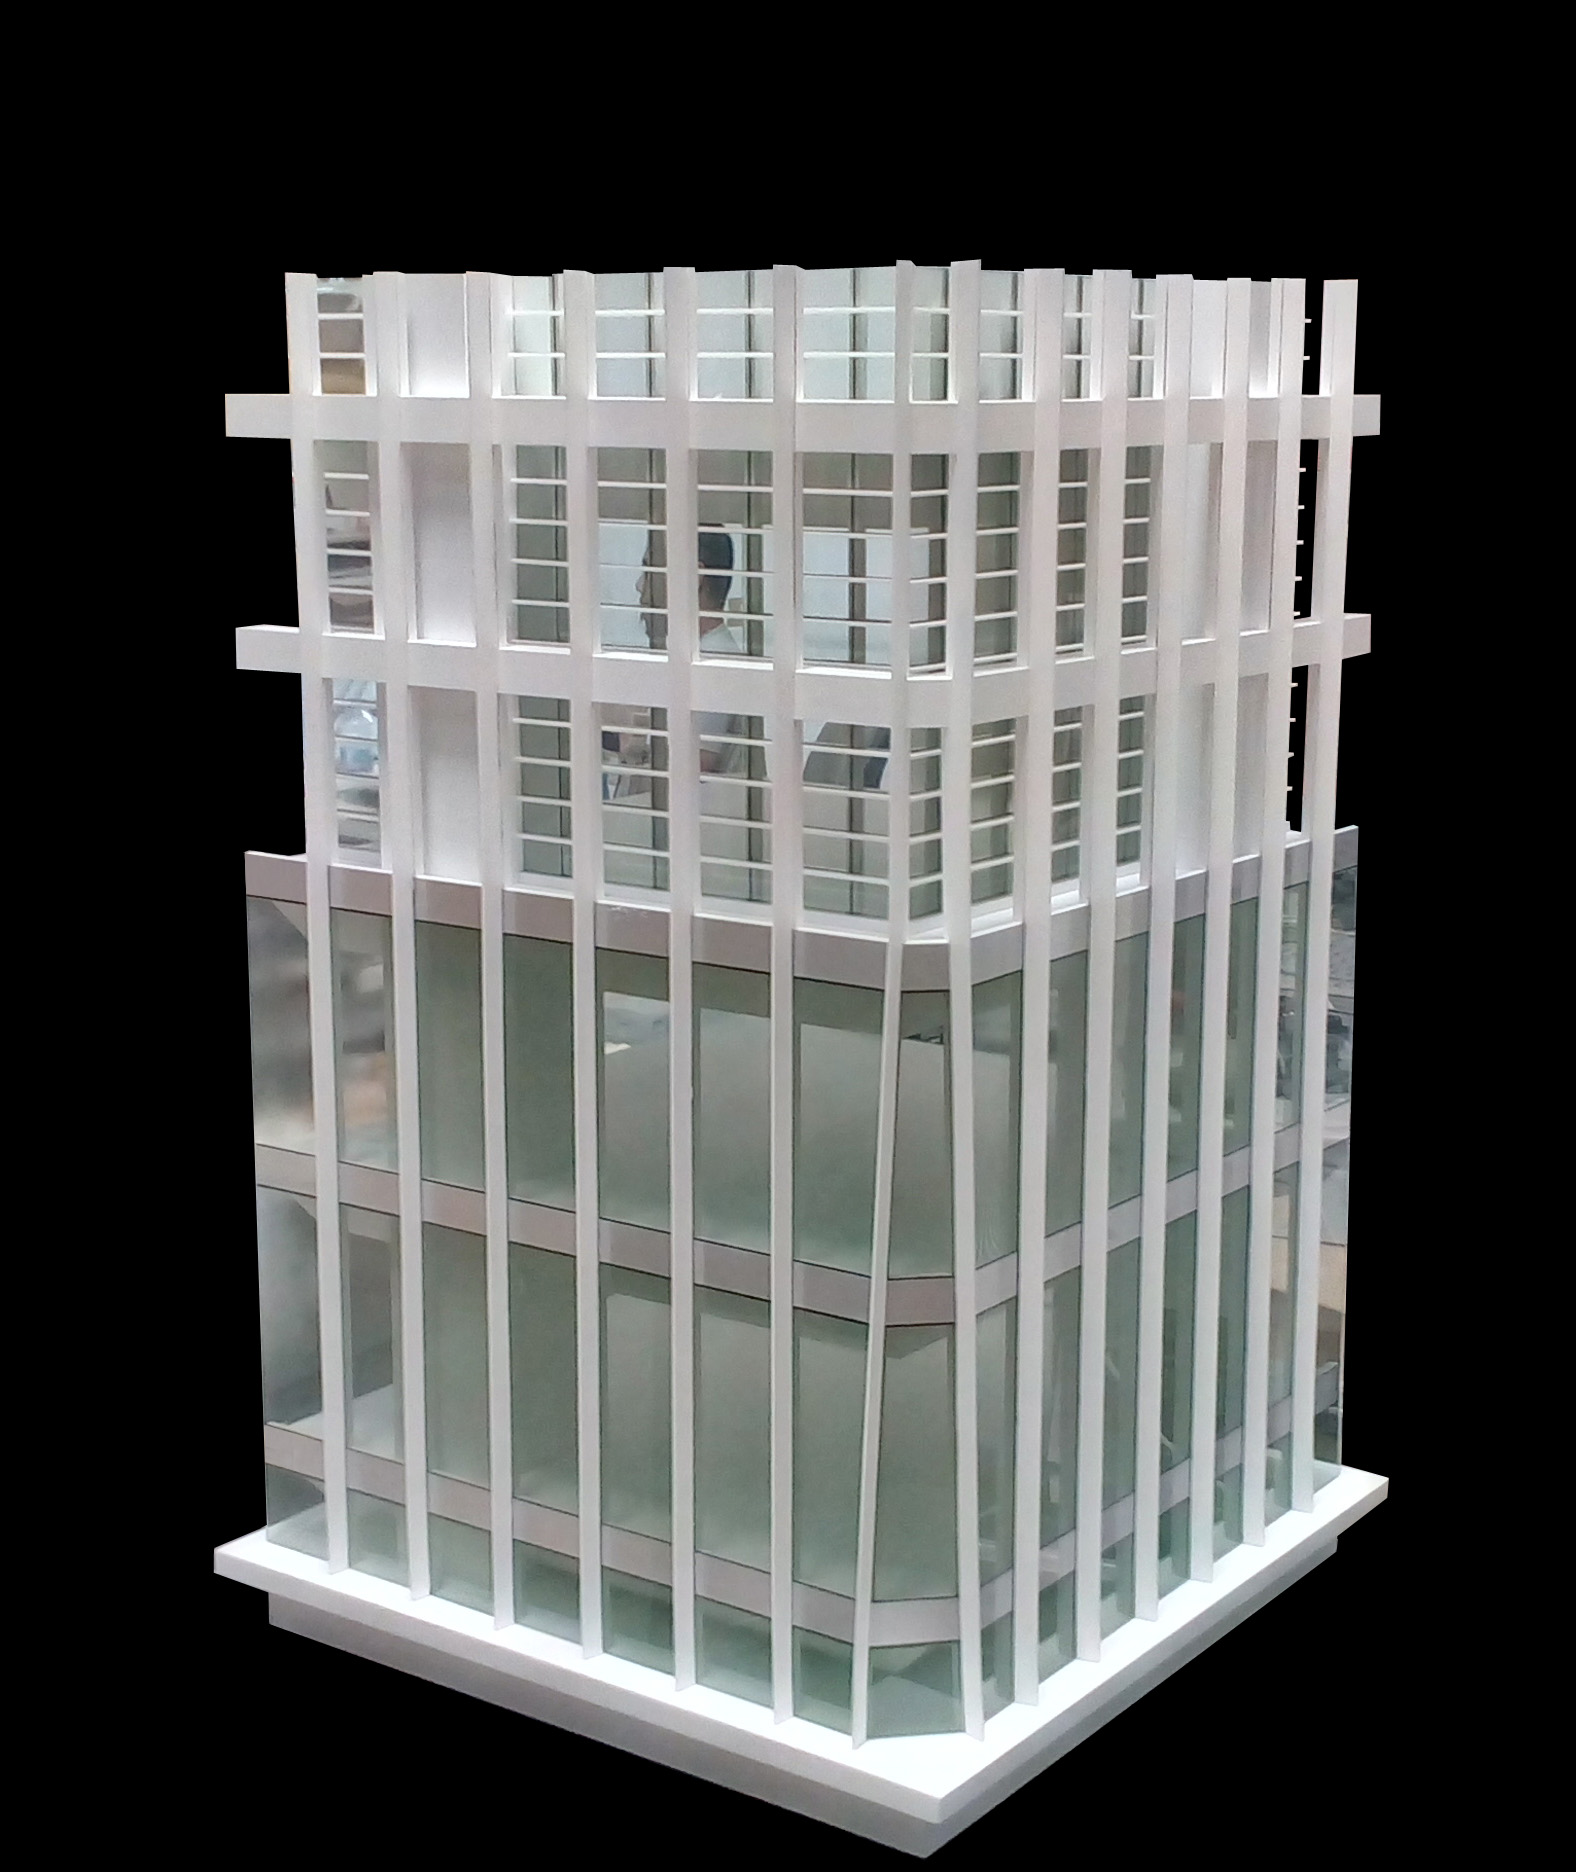 Scale Model - Architectural - Tower - Qindao tower section - UAE